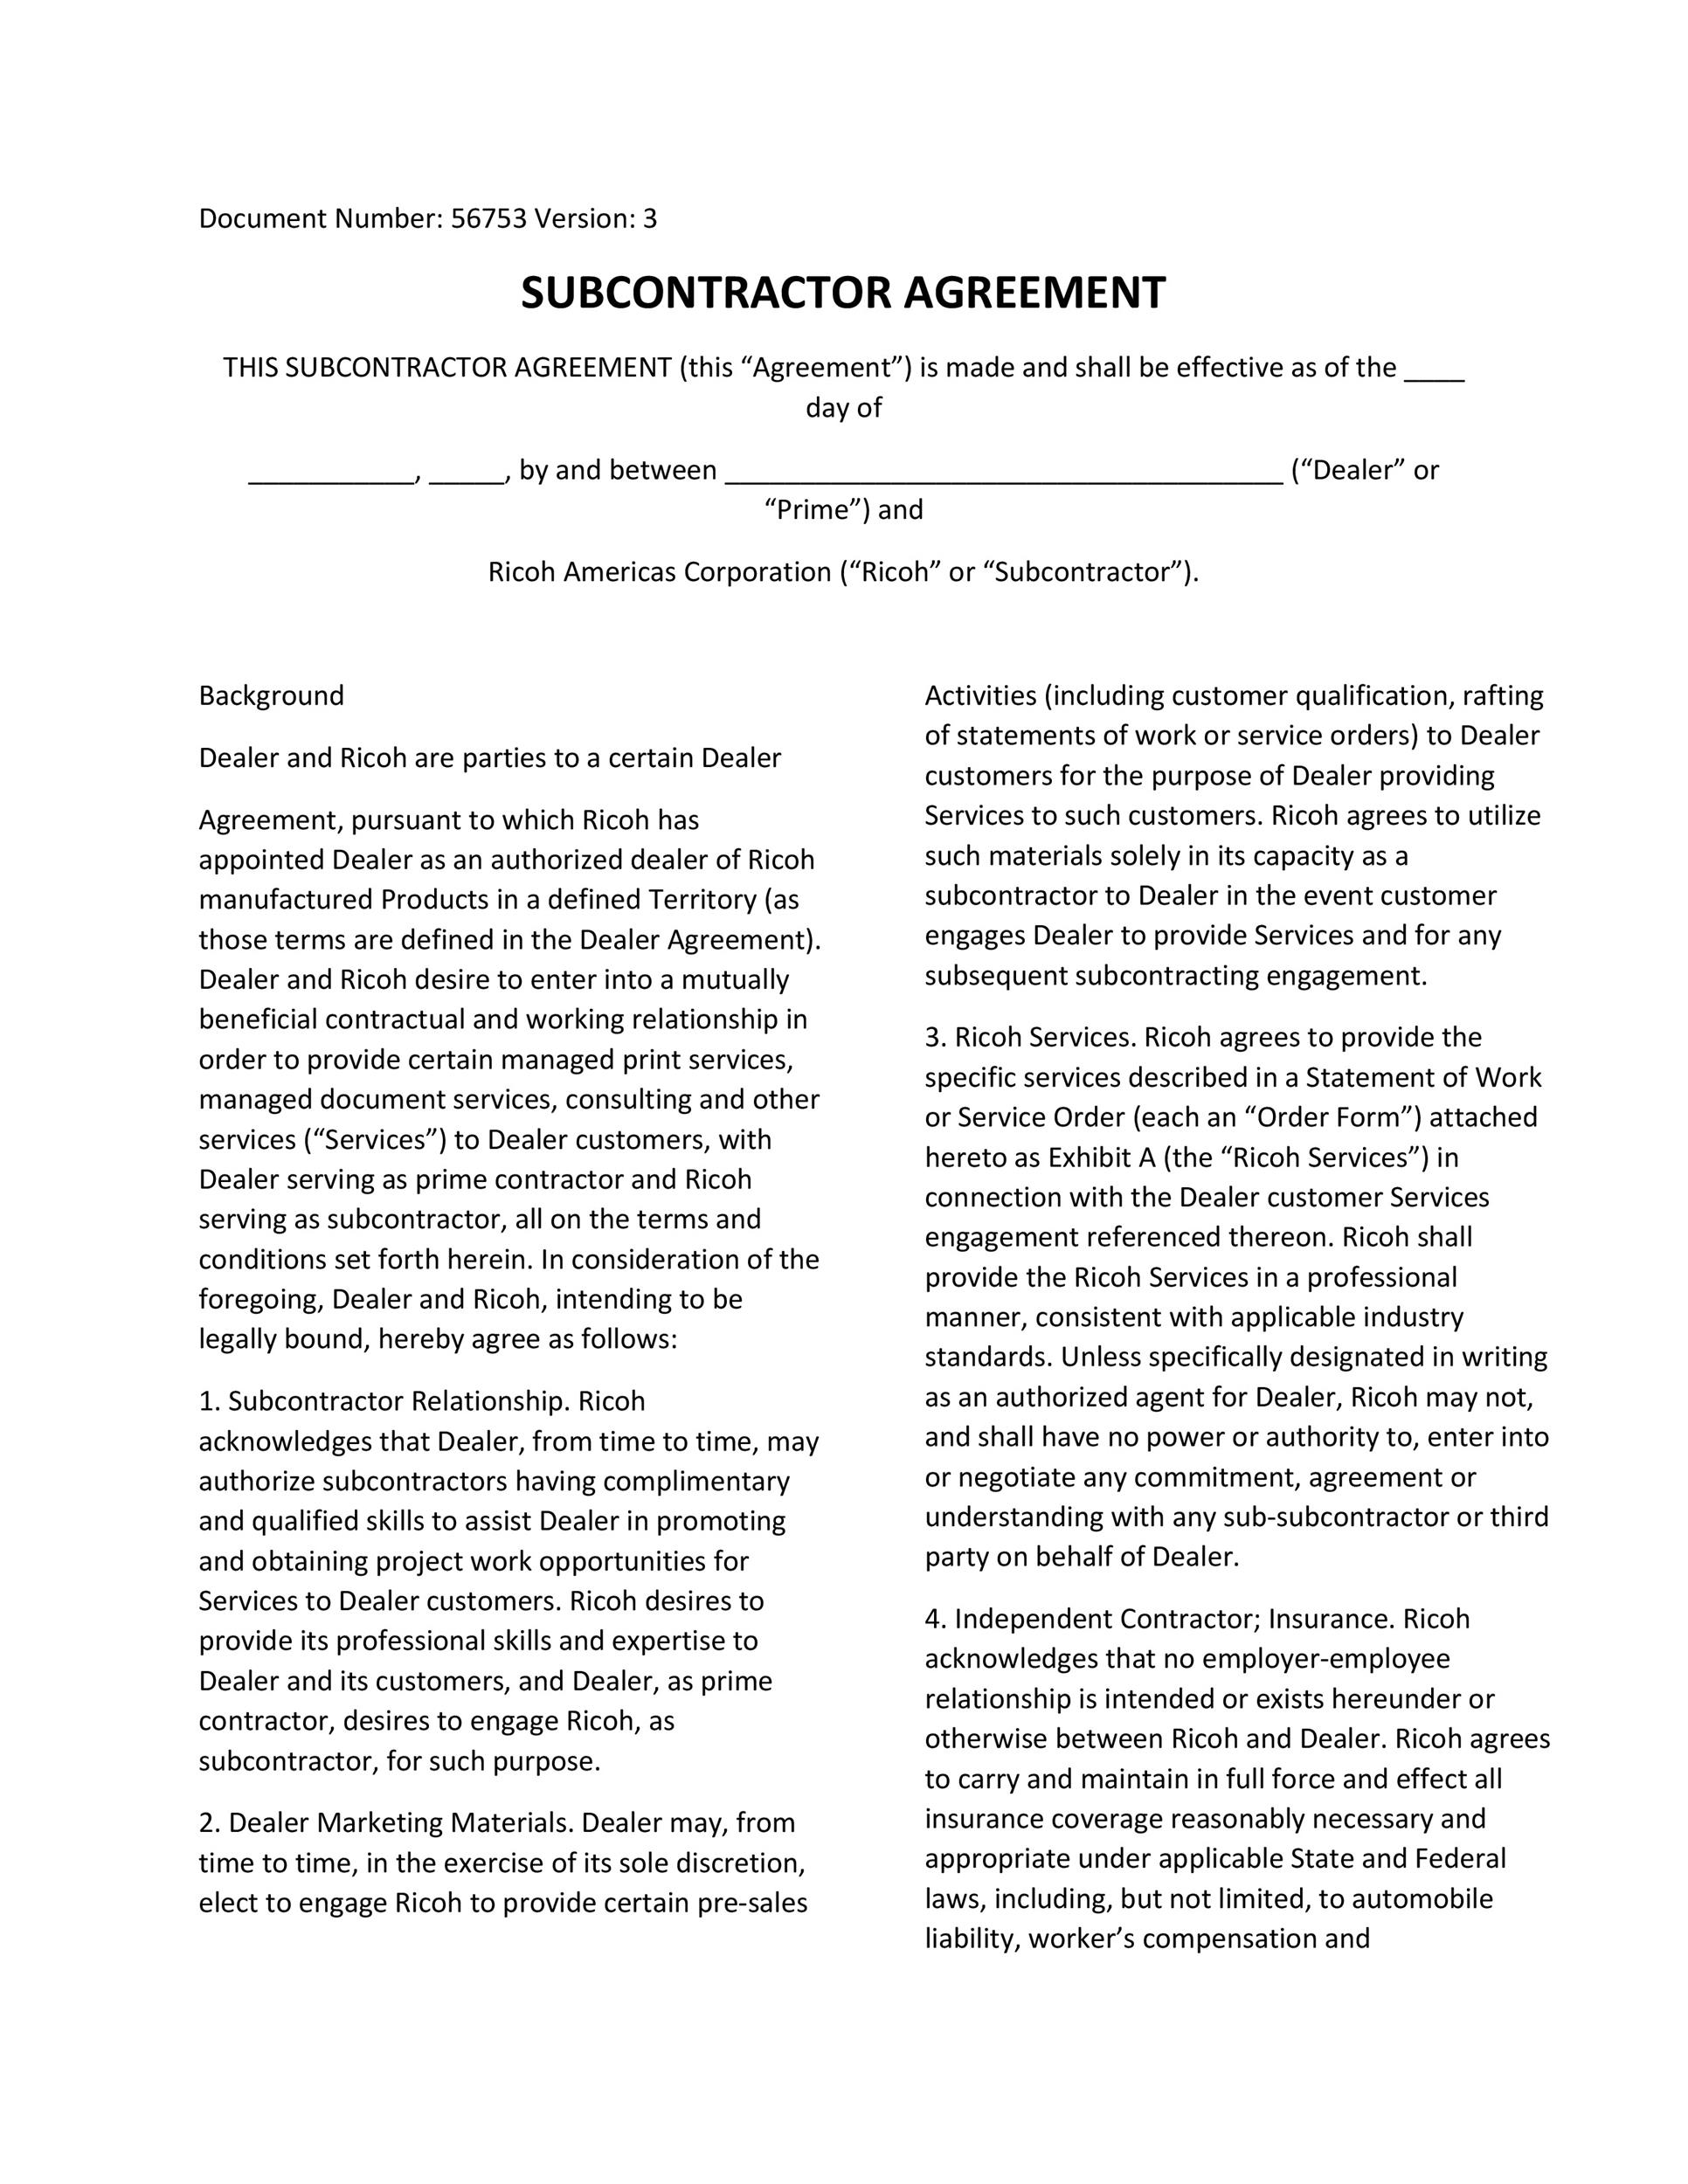 Free Subcontractor Agreement 36